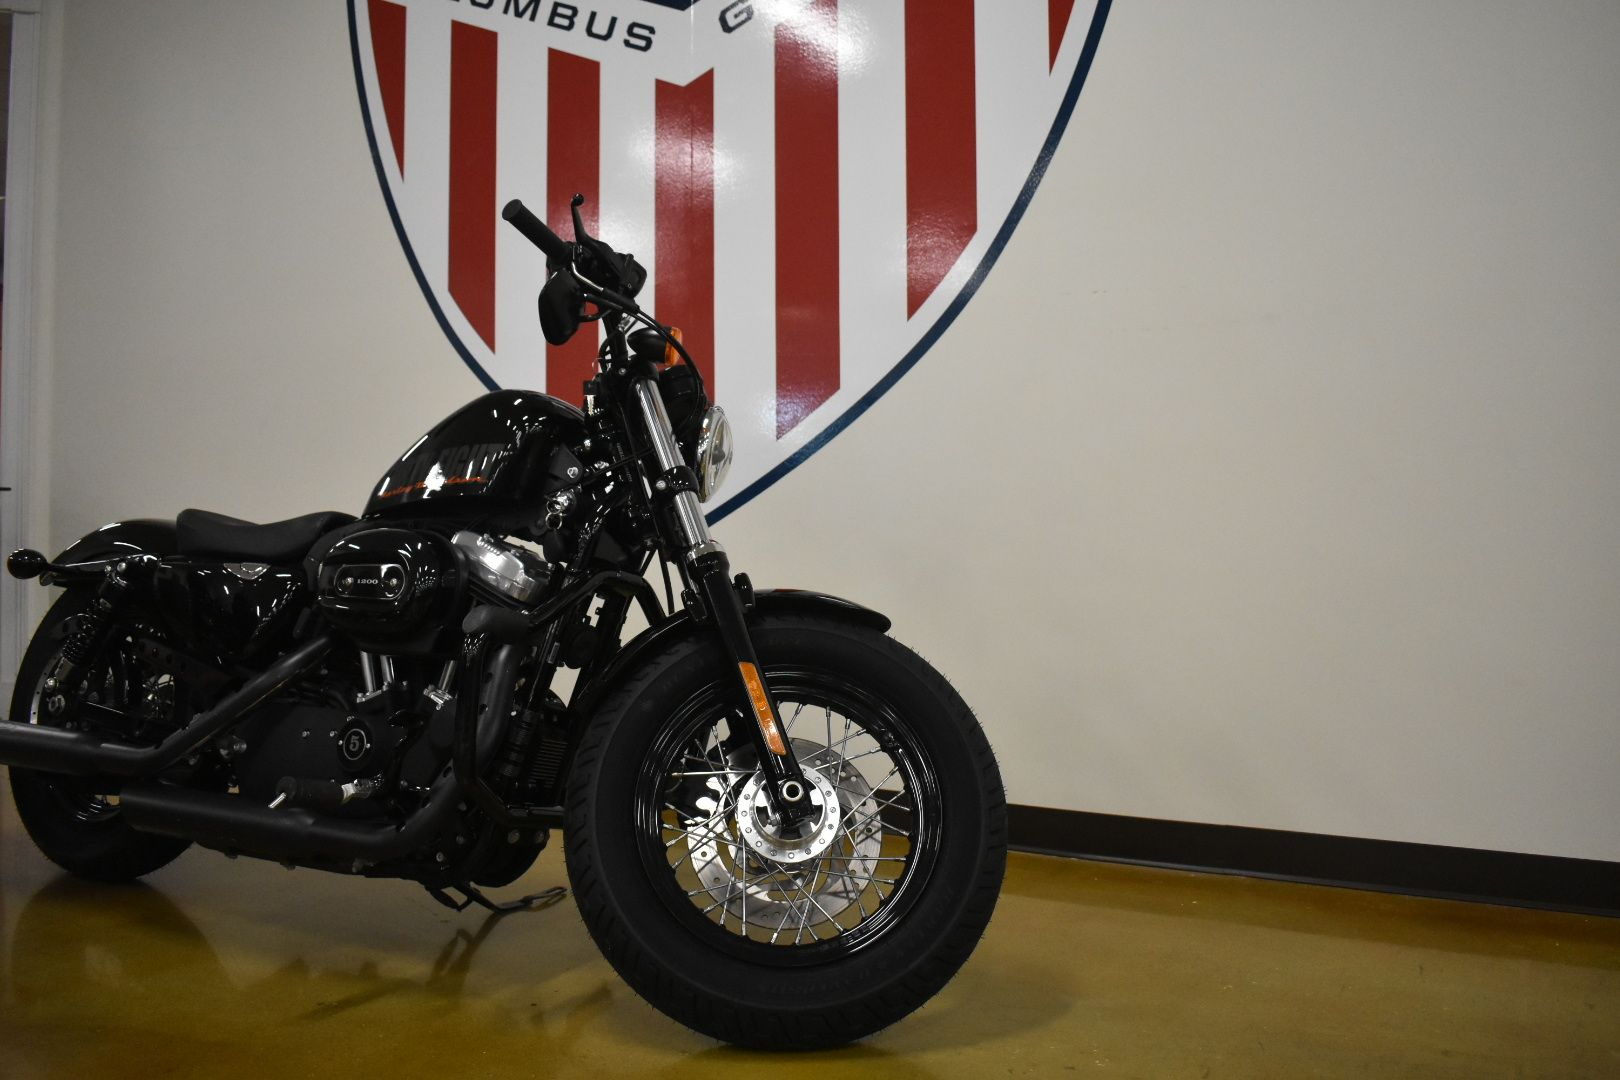 Pre-Owned 2013 Harley-Davidson Forty-Eight XL1200X